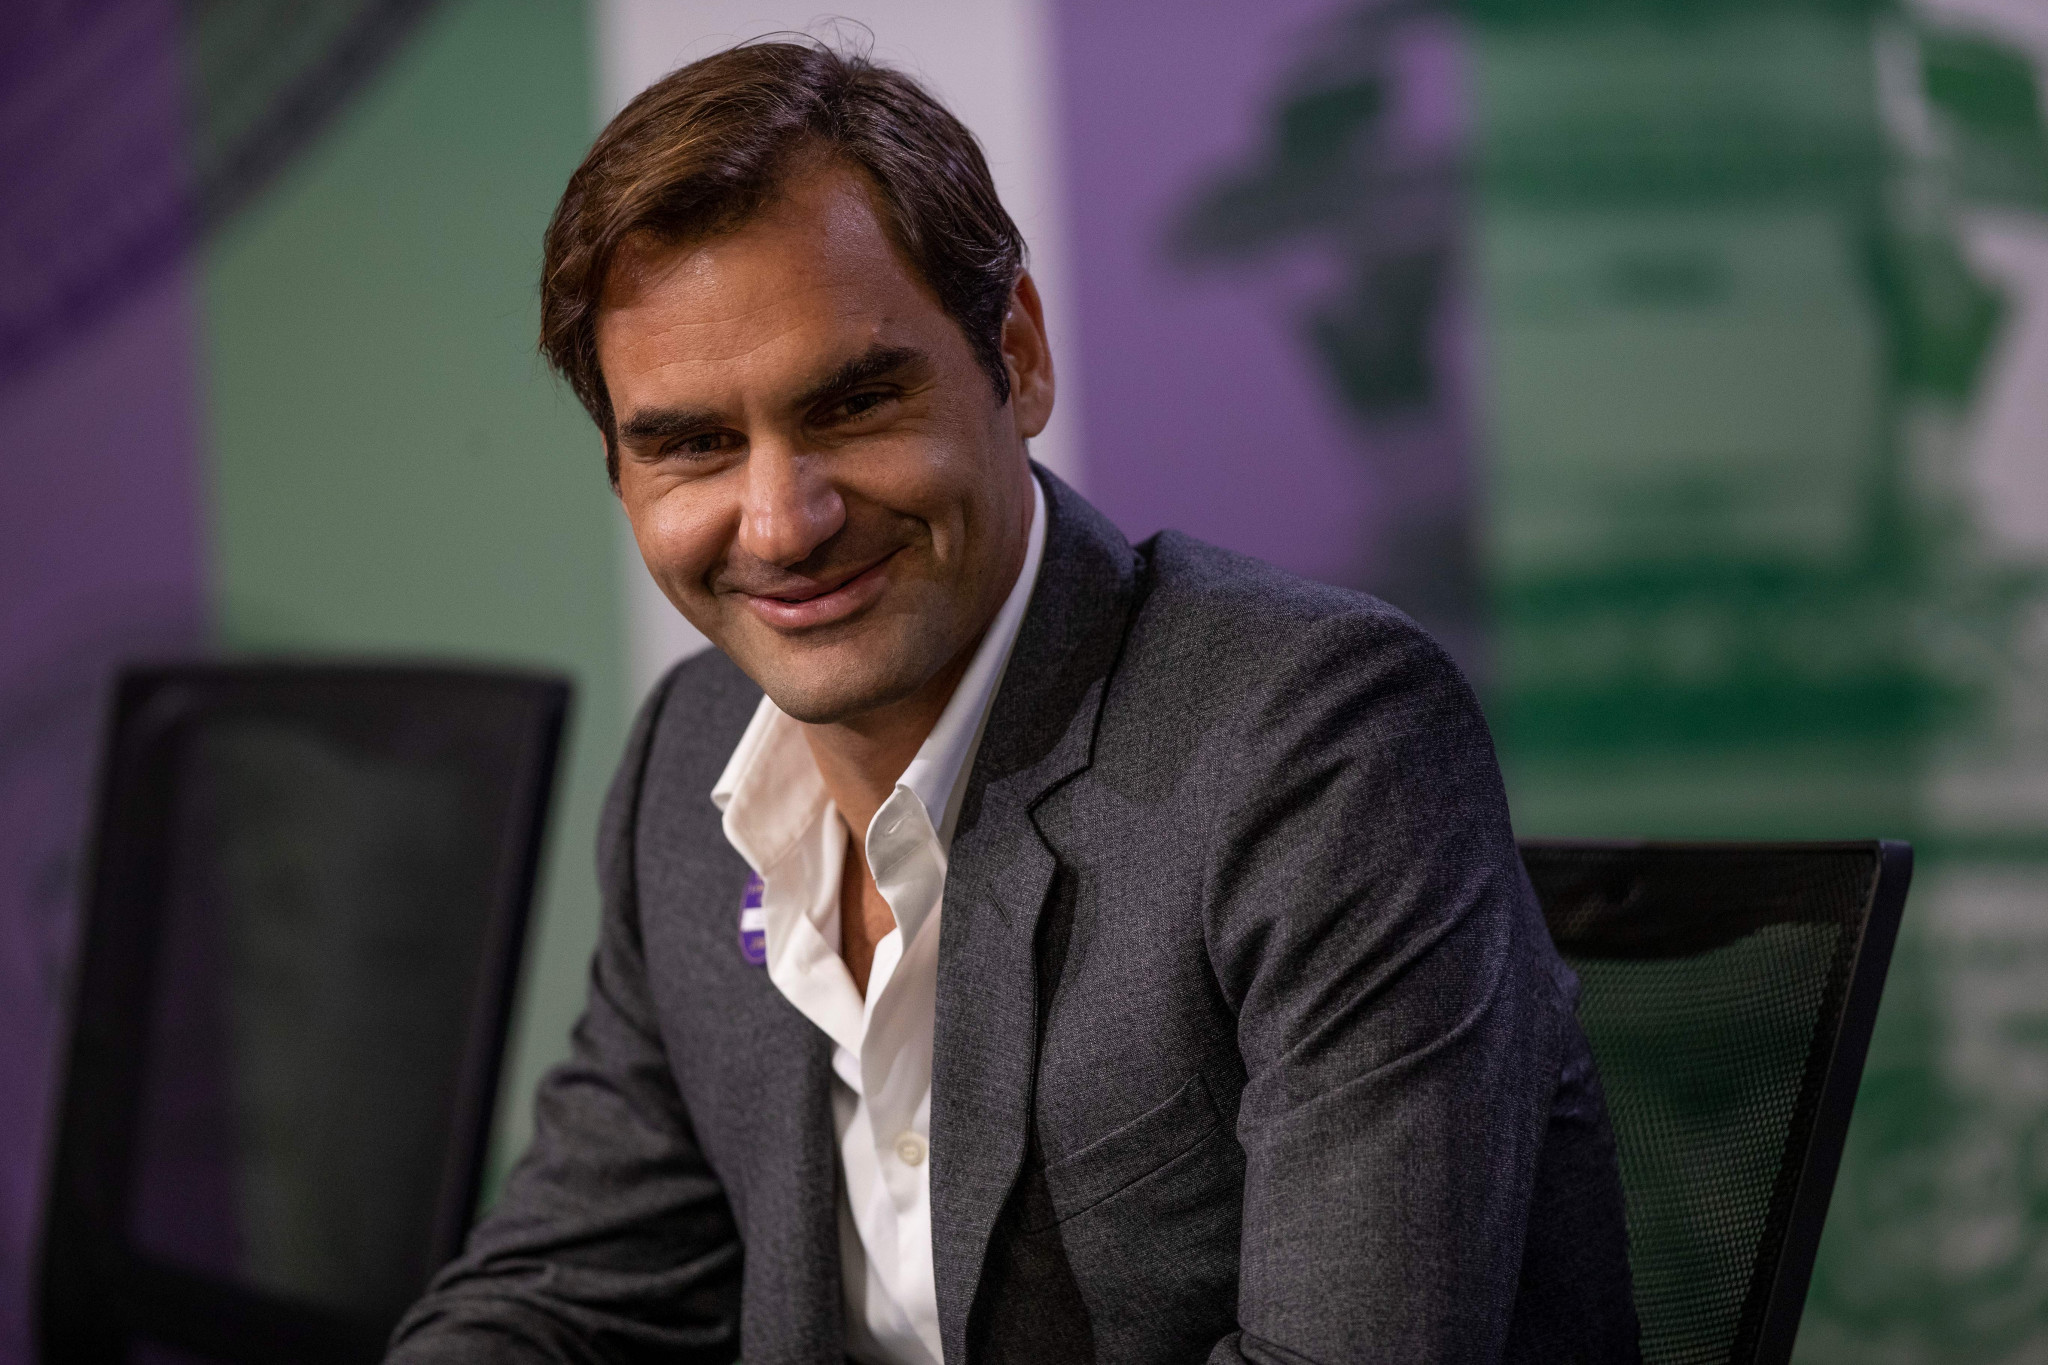 Federer says there will never be enough drug testing in tennis